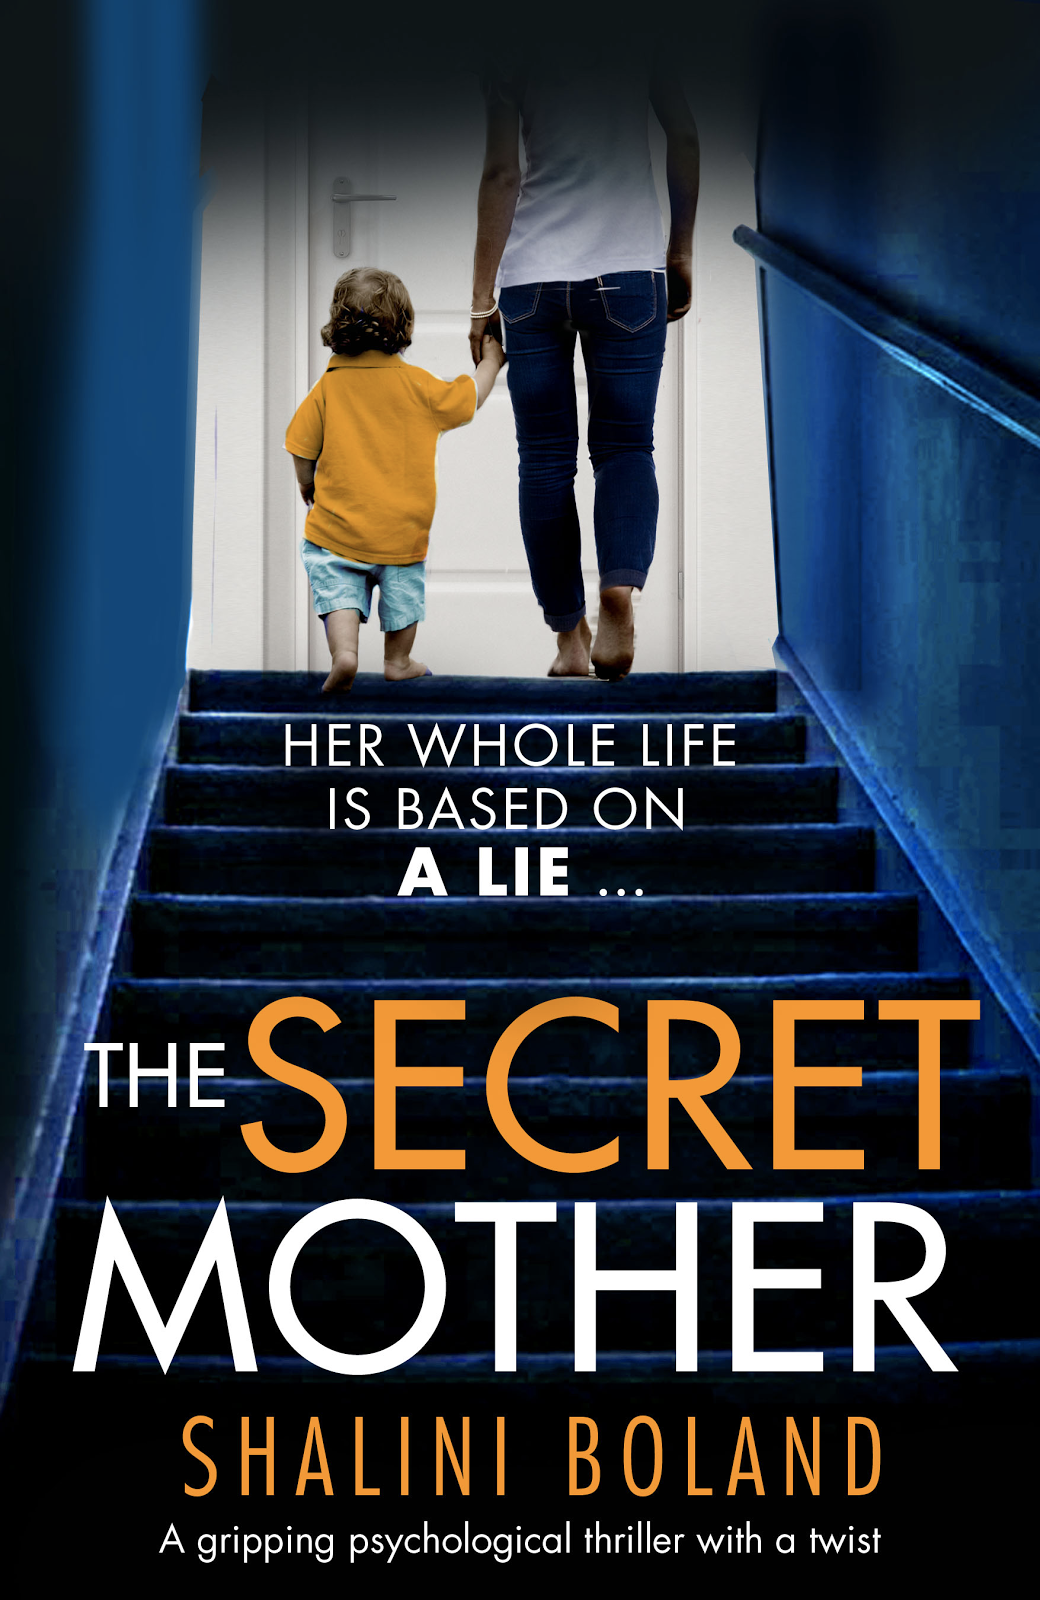 The Secret Mother - a gripping psychological thriller